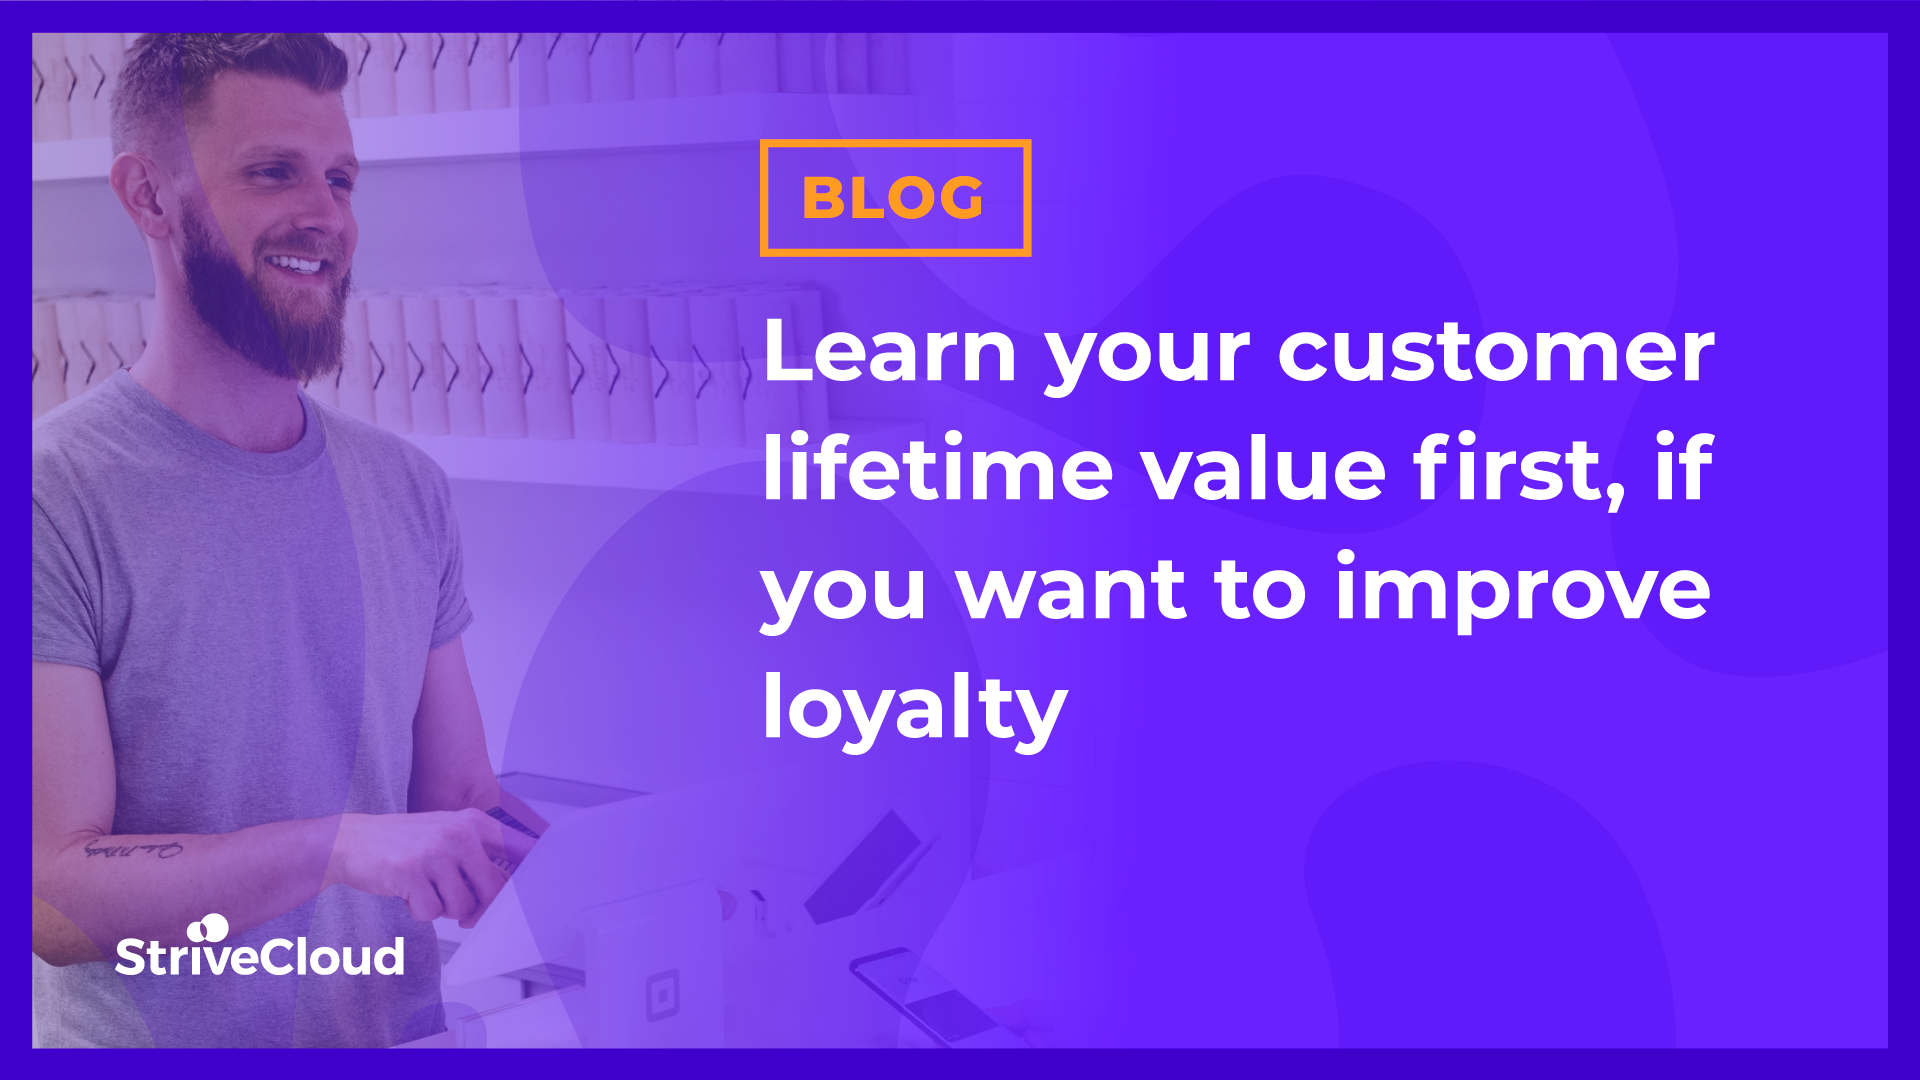 Learn your customer lifetime value first, if you want to improve loyalty